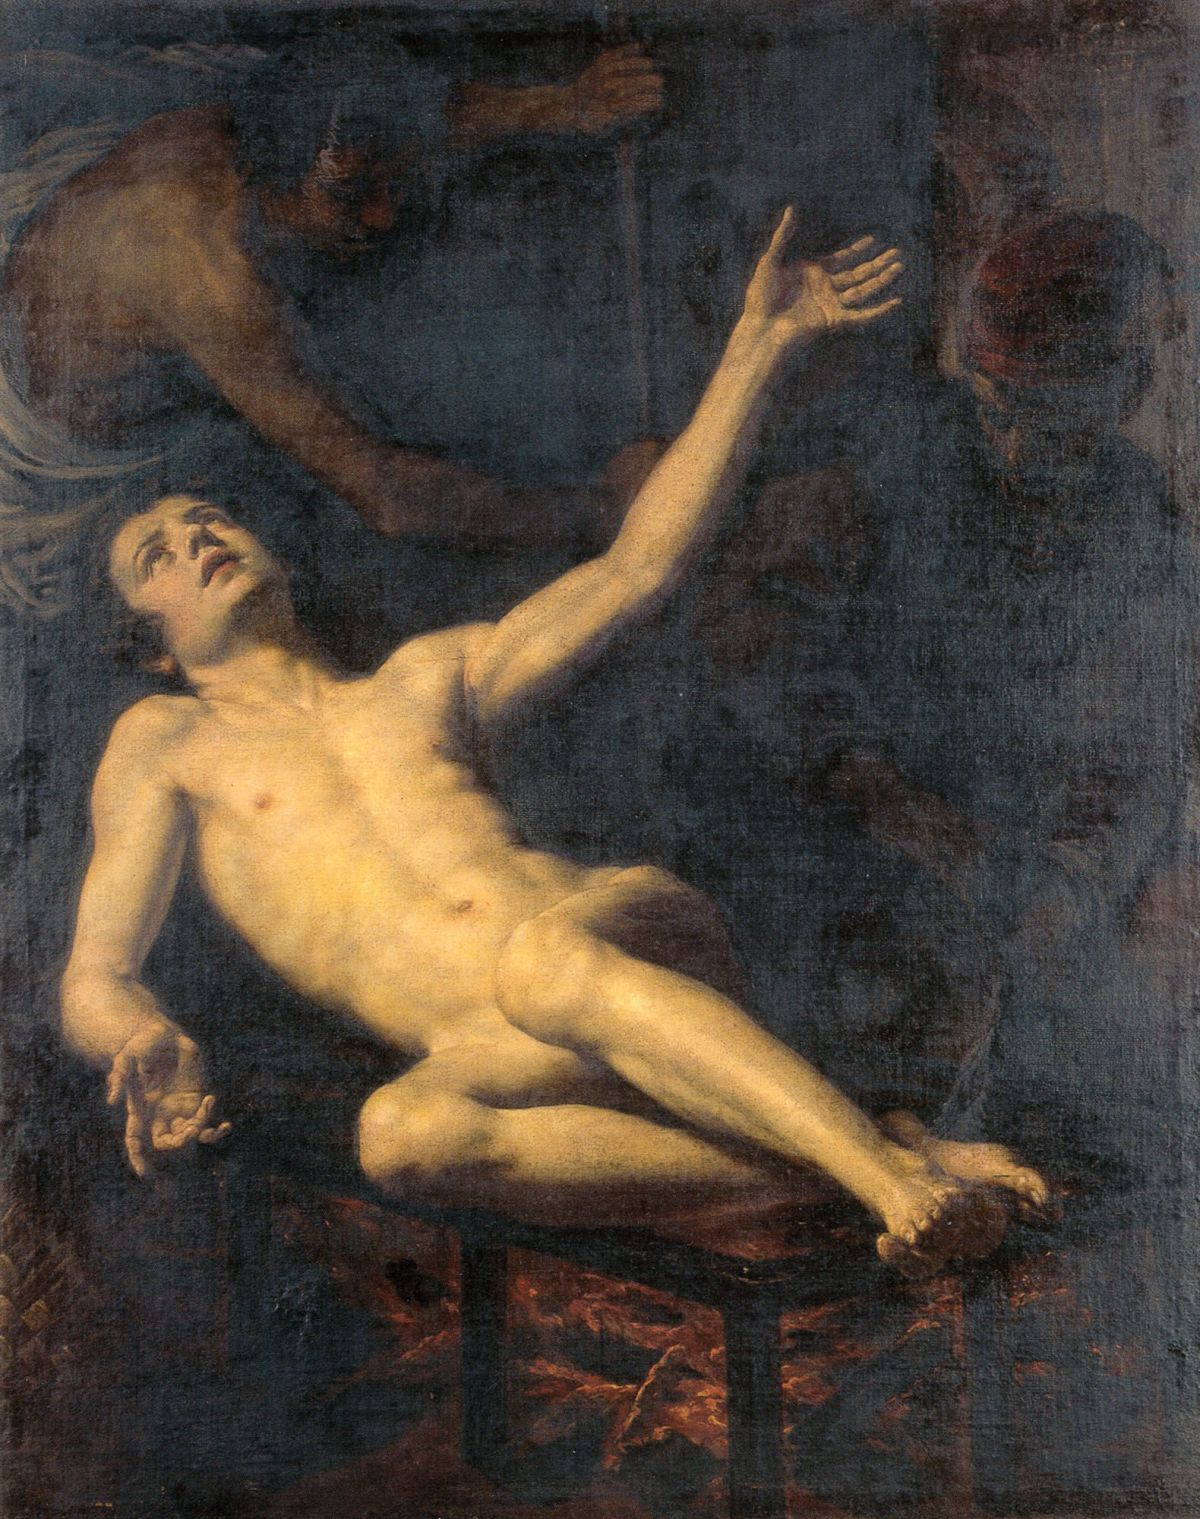 The Martyrdom of Saint Lawrence by Jacopo Vignali